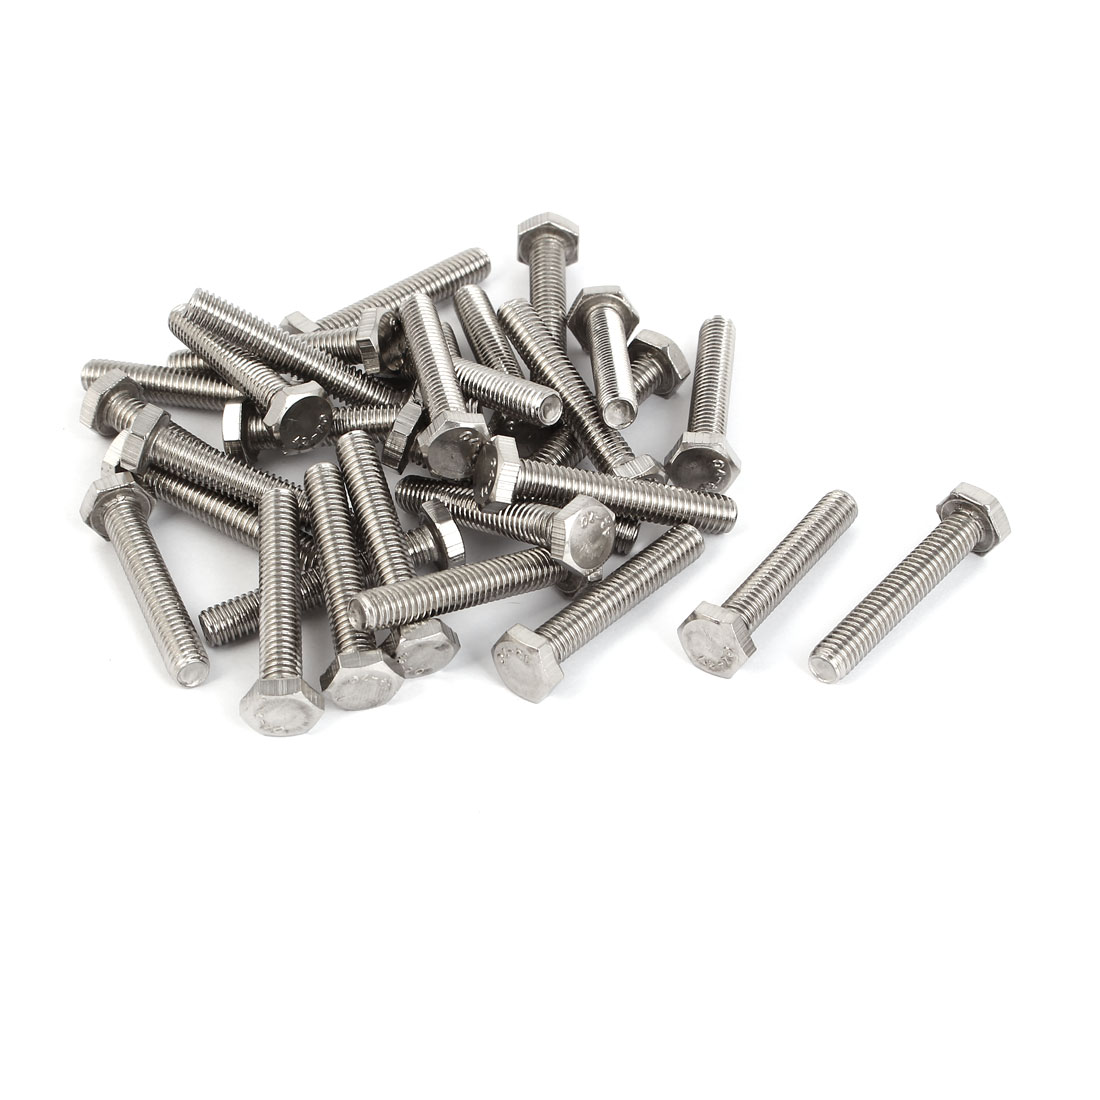 M6 x 35mm Stainless Steel Fully Thread Hex Hexagon Screws Bolts DIN 933 30PCS